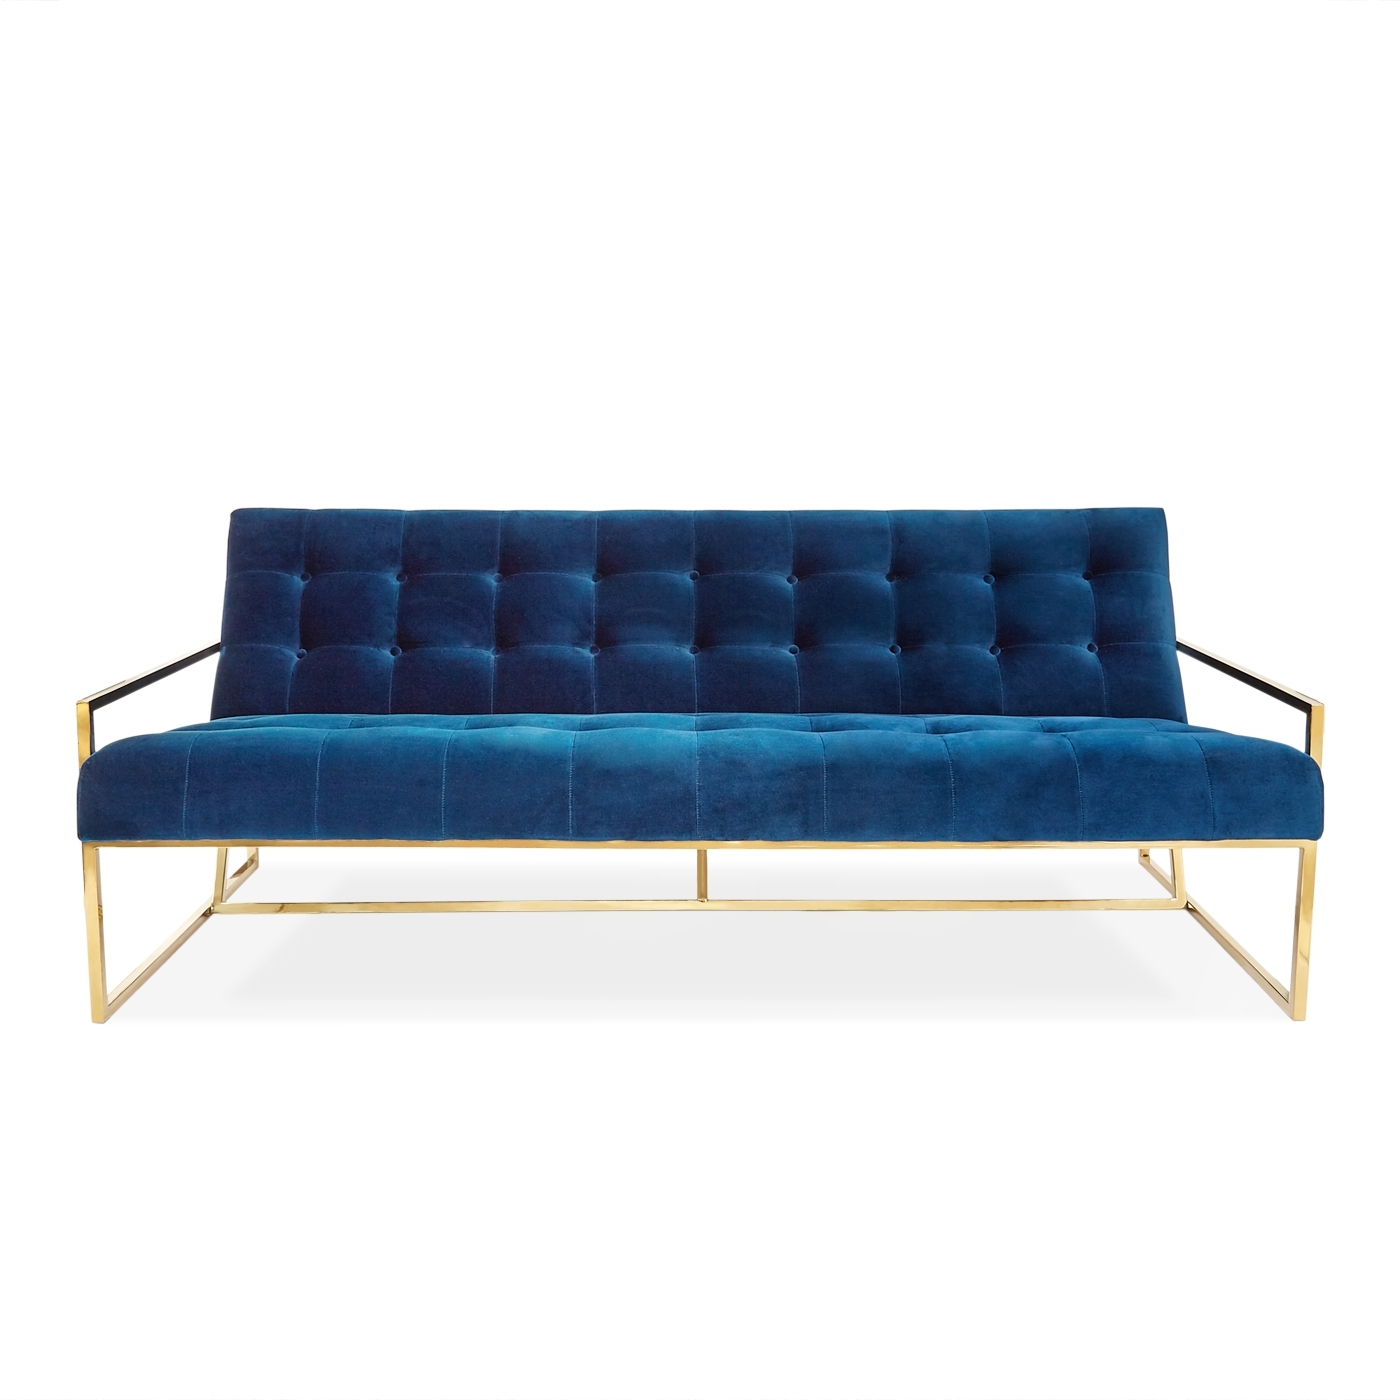 Jonathan Adler With Regard To Most Recently Released Apartment Sofas (View 3 of 15)